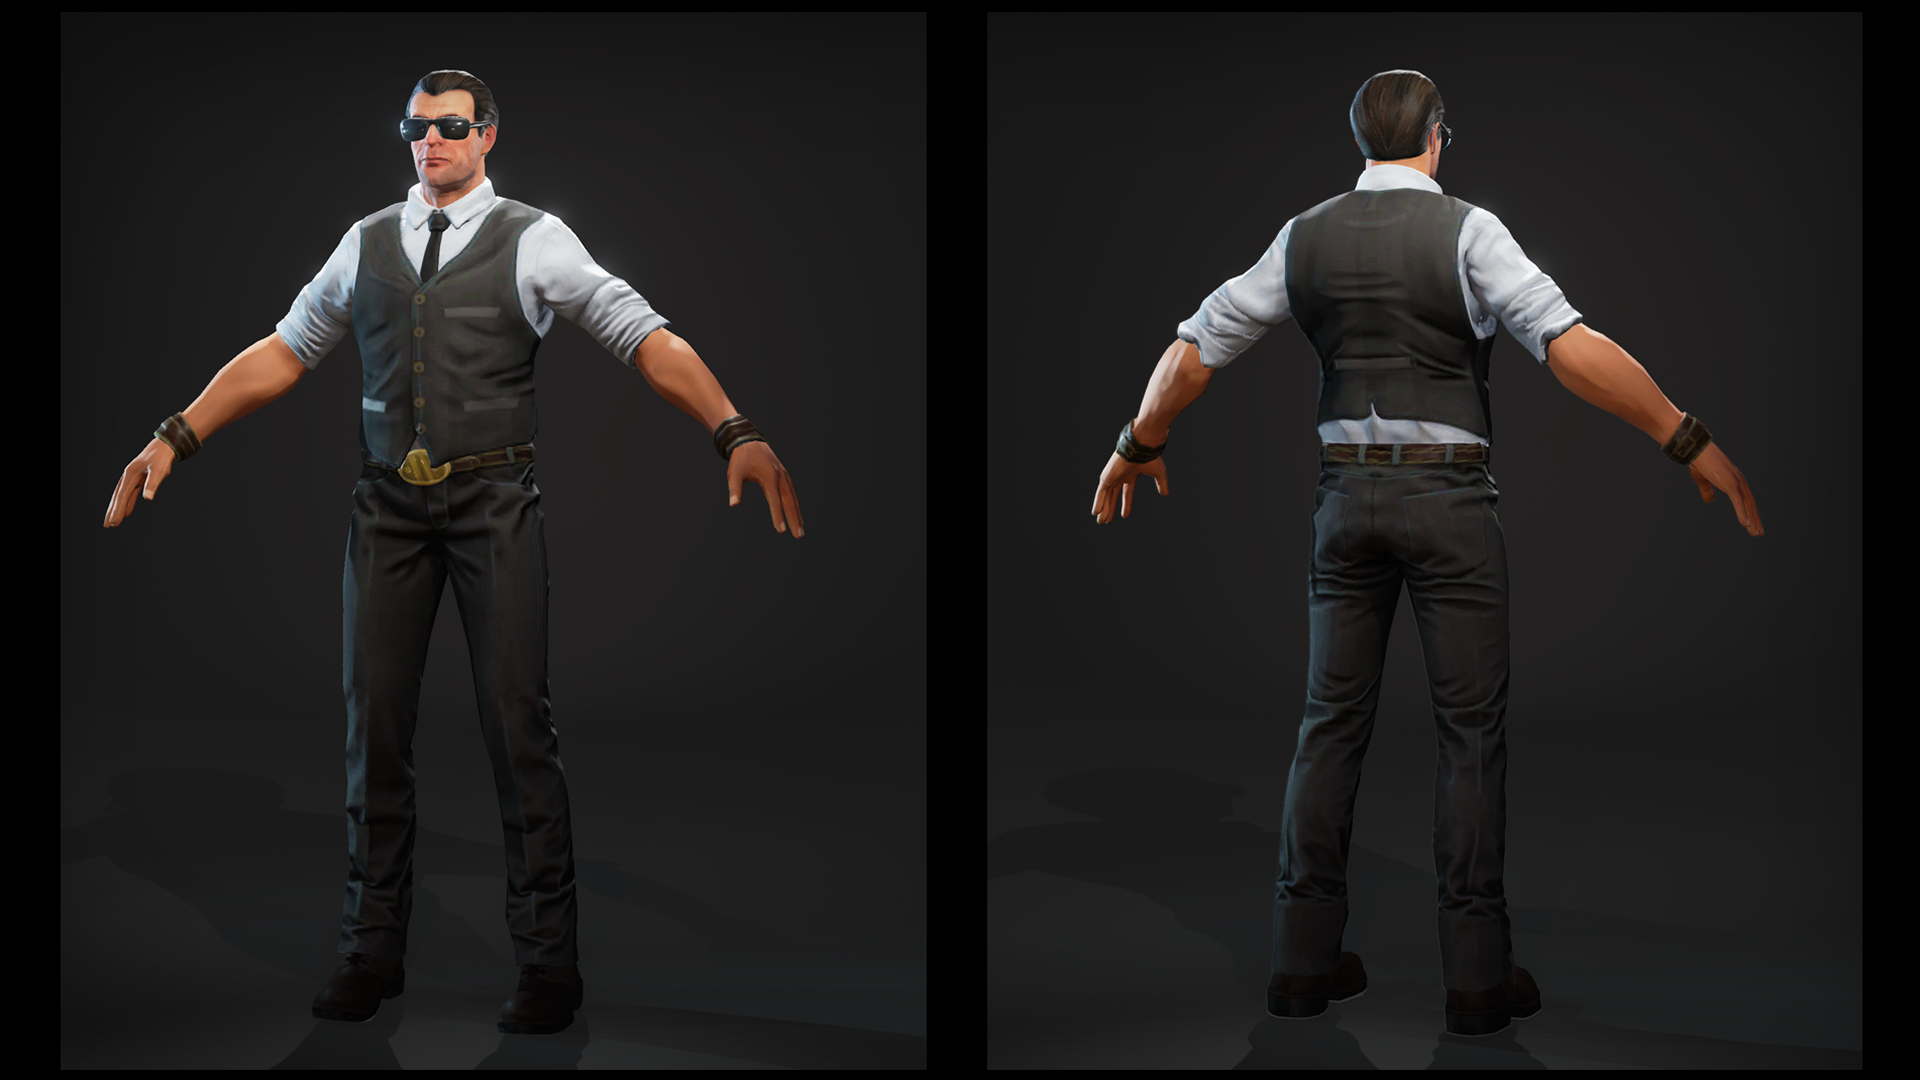 Character Design Unreal Engine 4 : Agents characters pack by batewar in ue